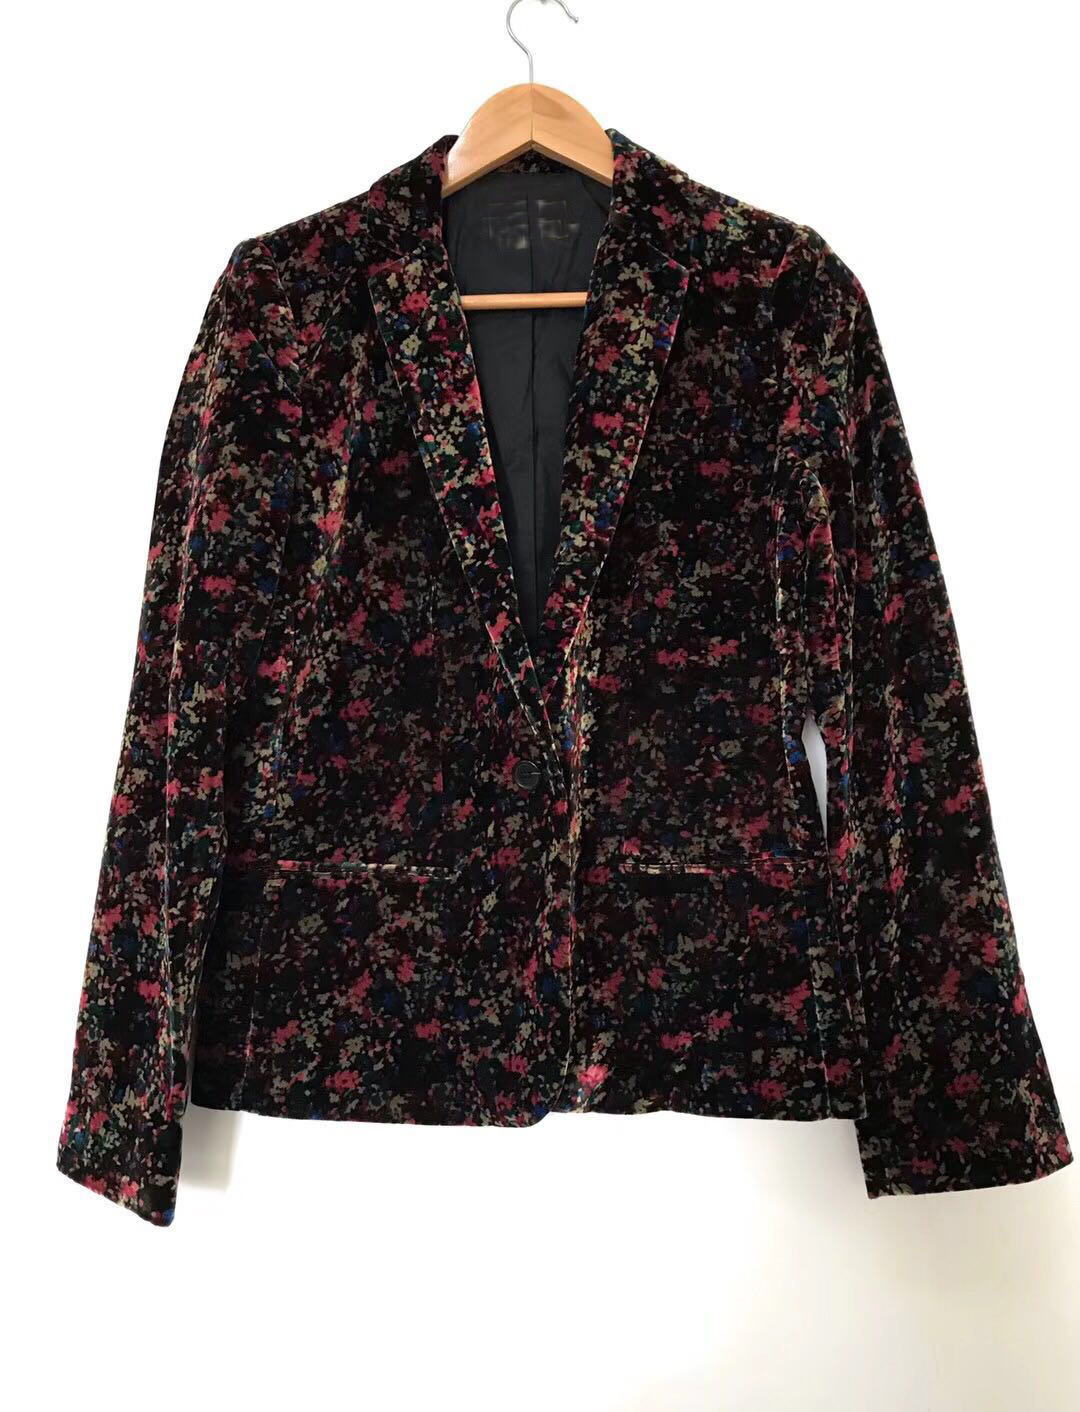 Fashion Autumn Multico Printing Floral V Neck Lady Jacket with One Button Women Coat Autumn Jacket